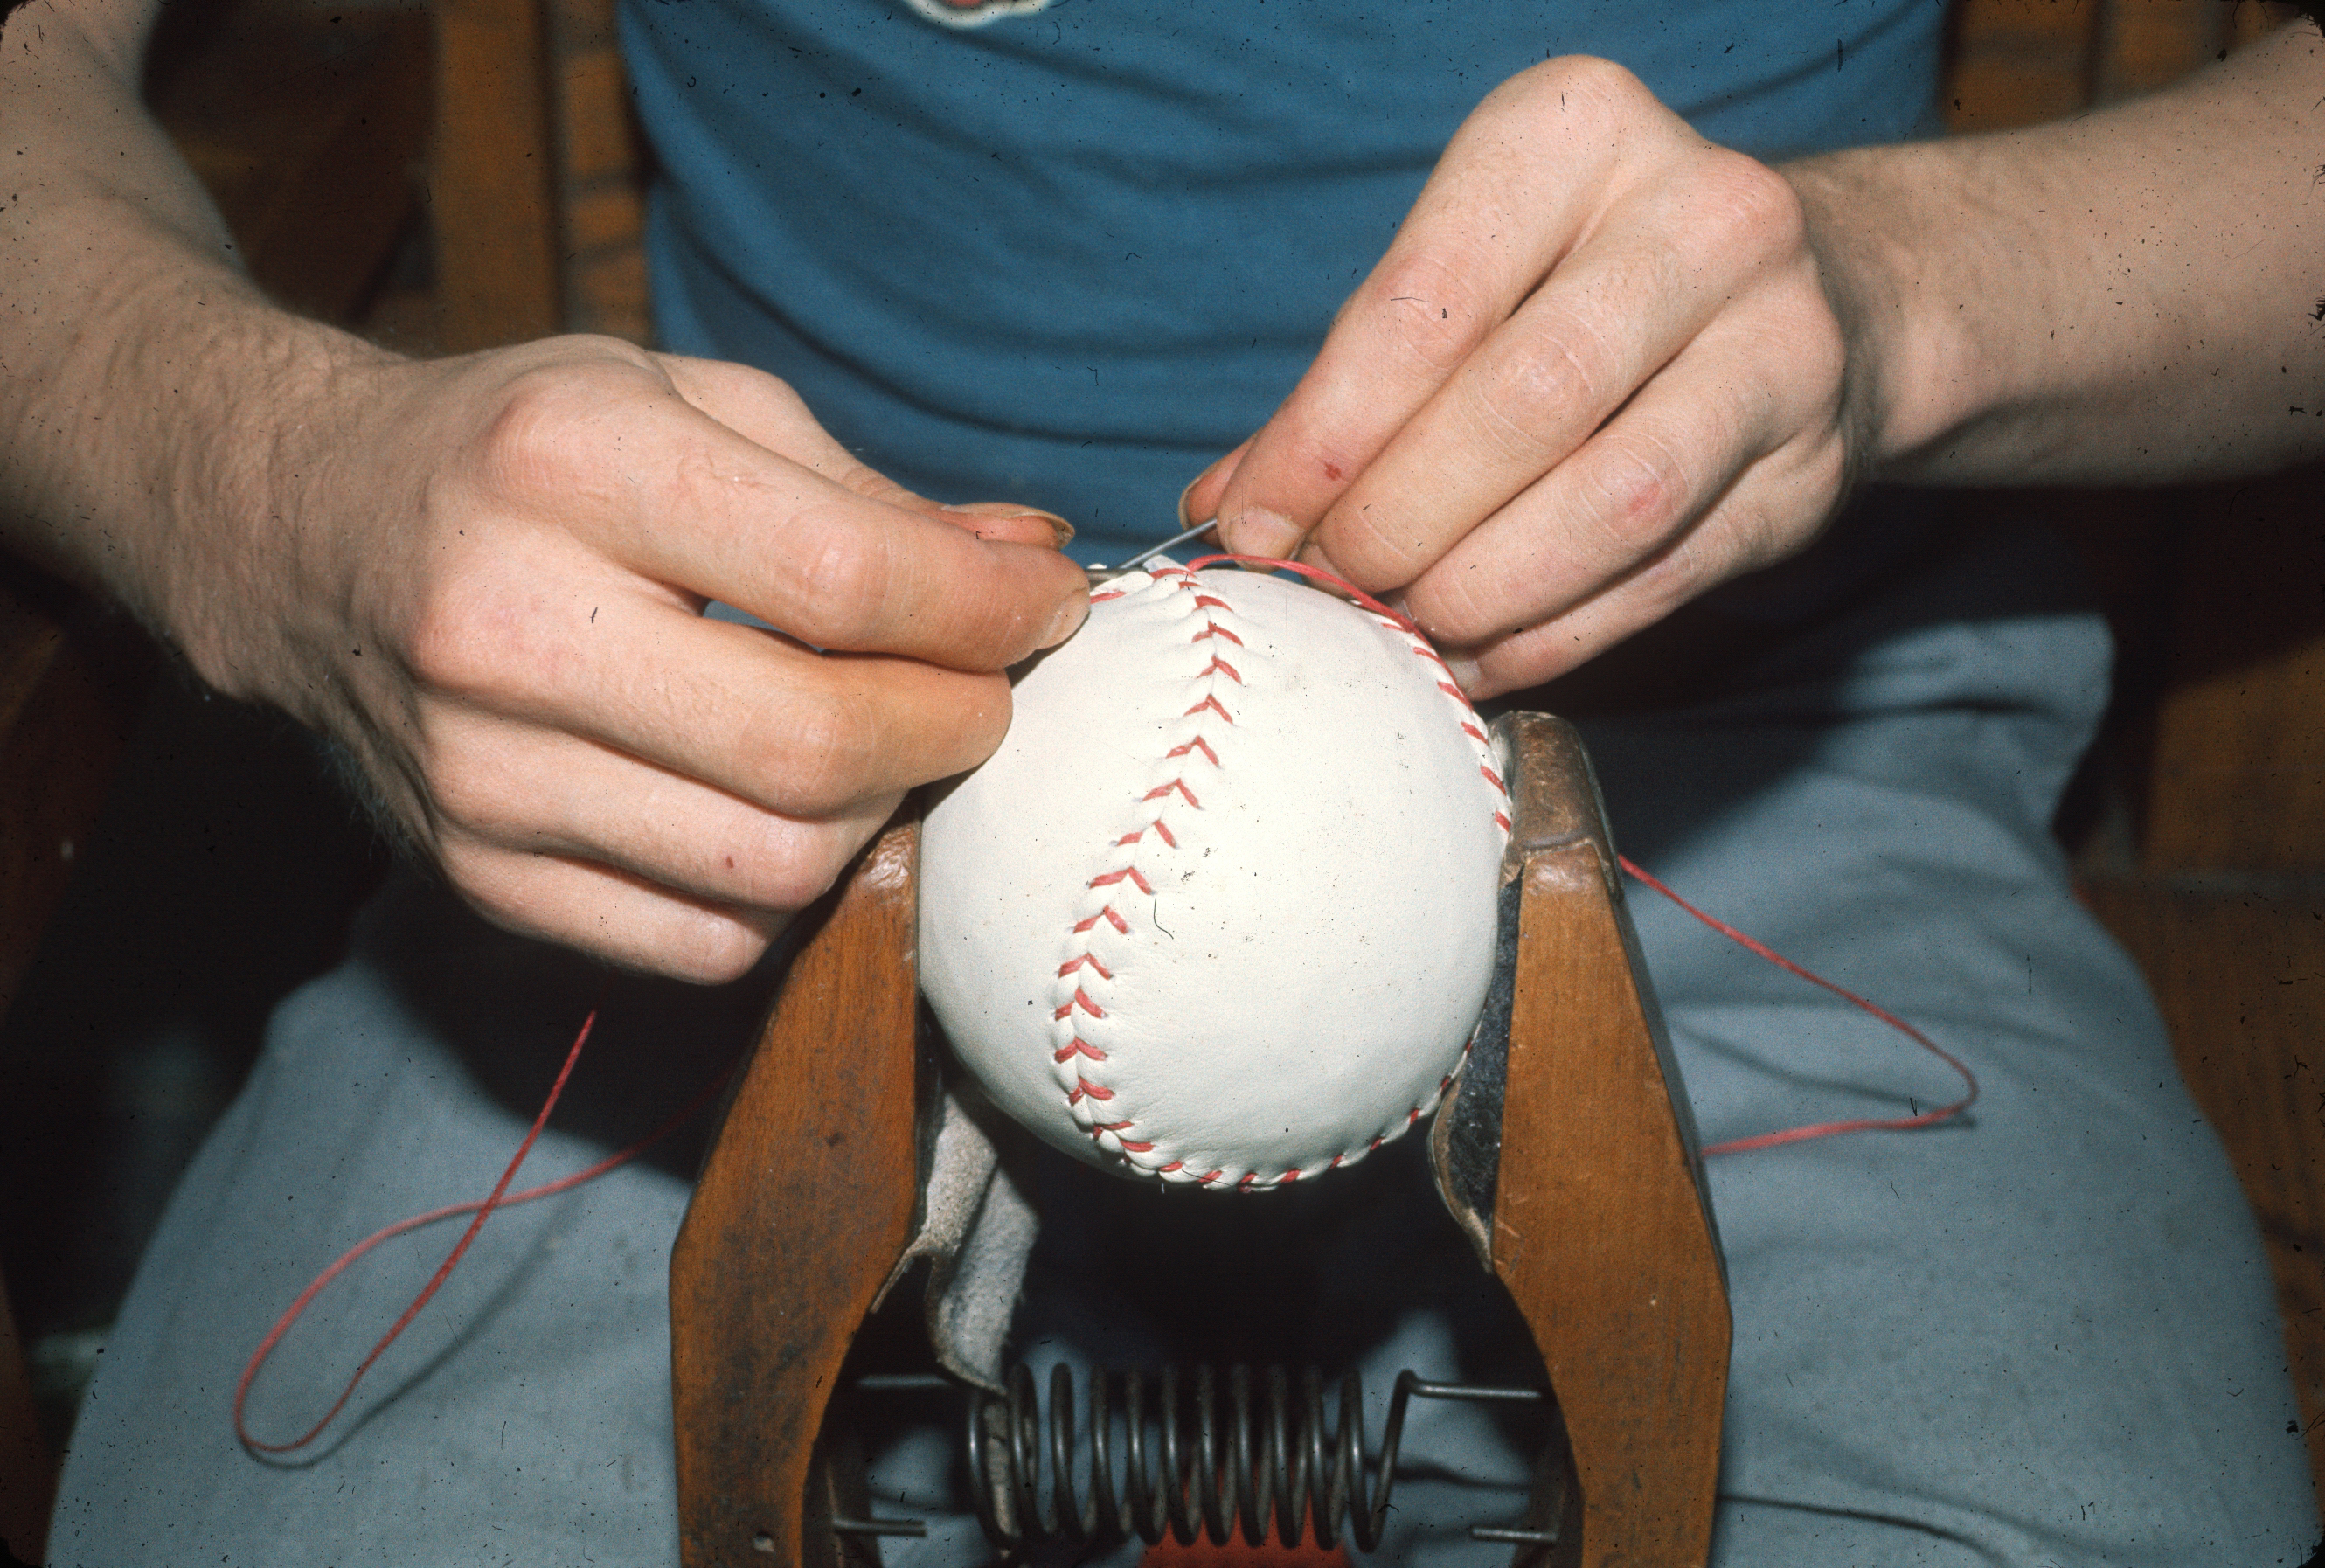 Patient stitching baseball